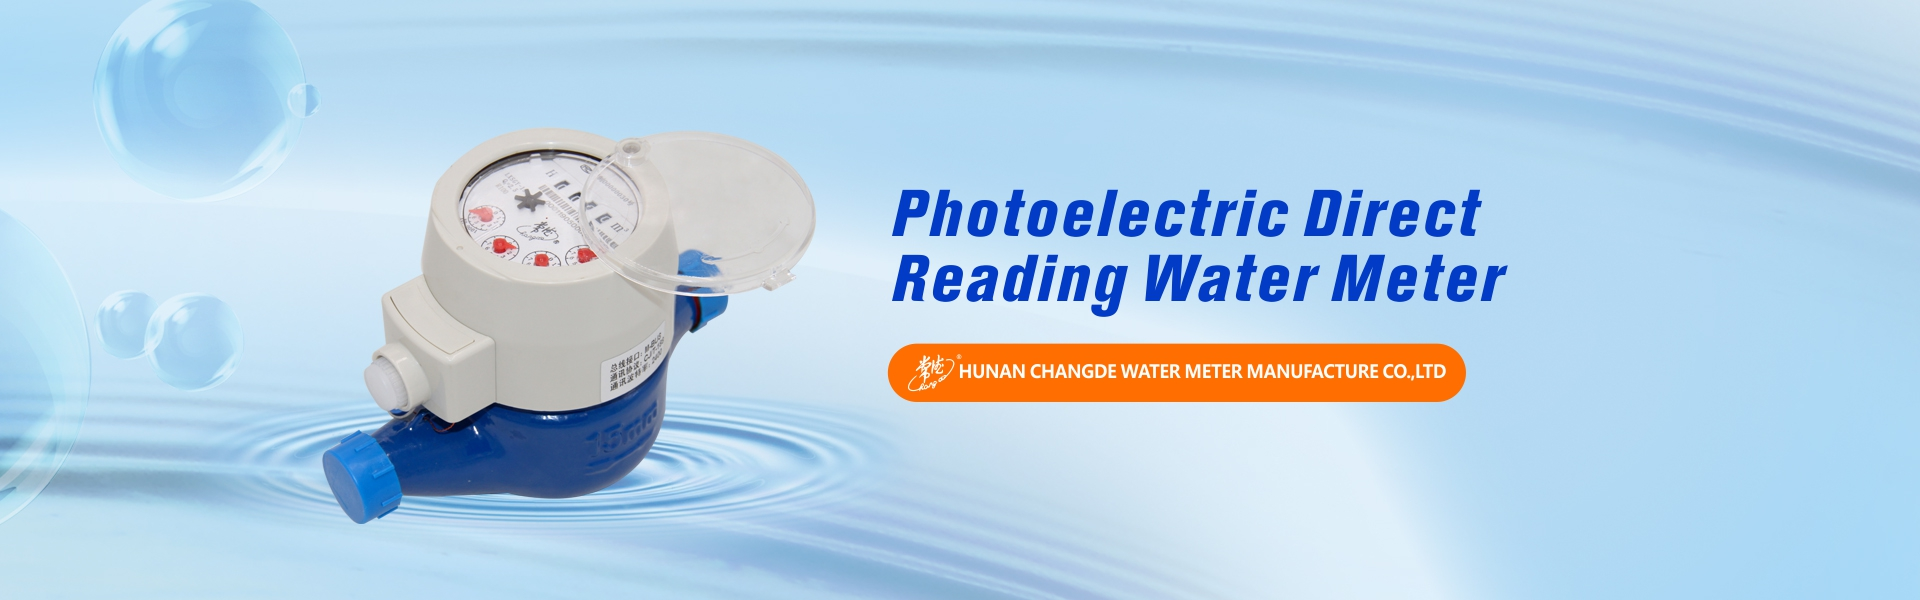 Changde Water Meter Manufacture Co.,Ltd